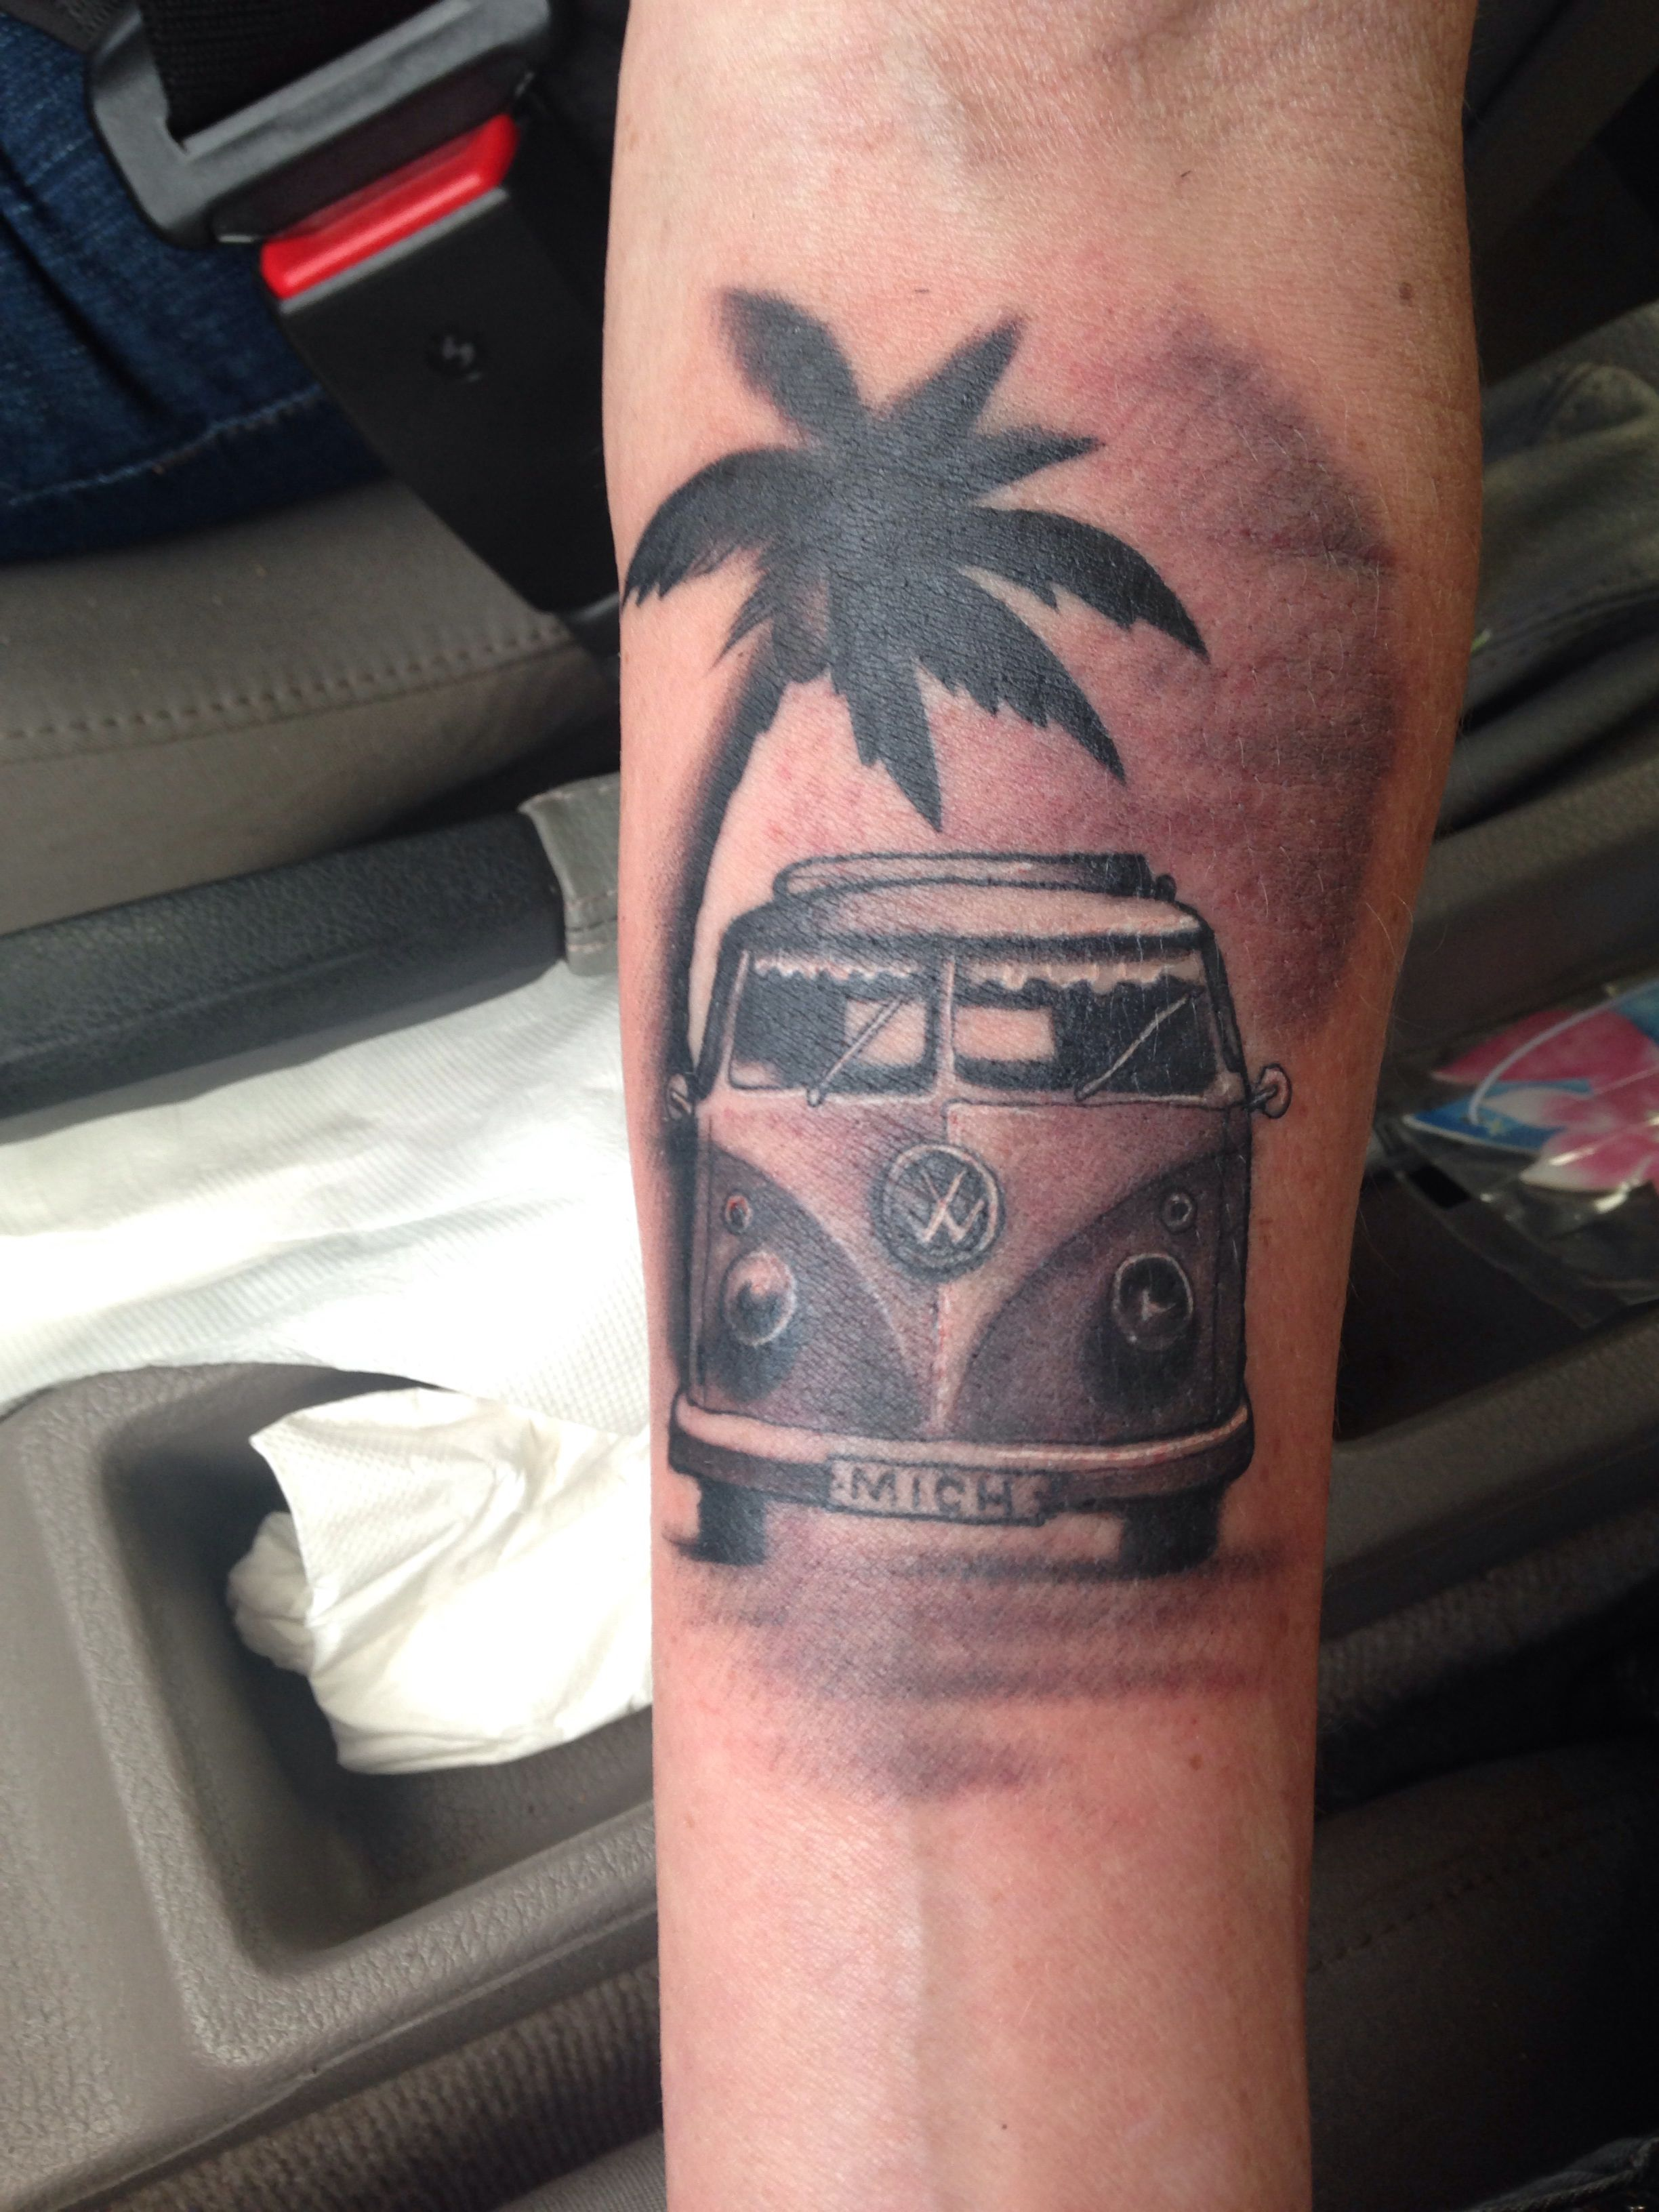 Vw Camper Tattoo Sleeve Tattoos Pinterest Vw Camper Ideas And Designs